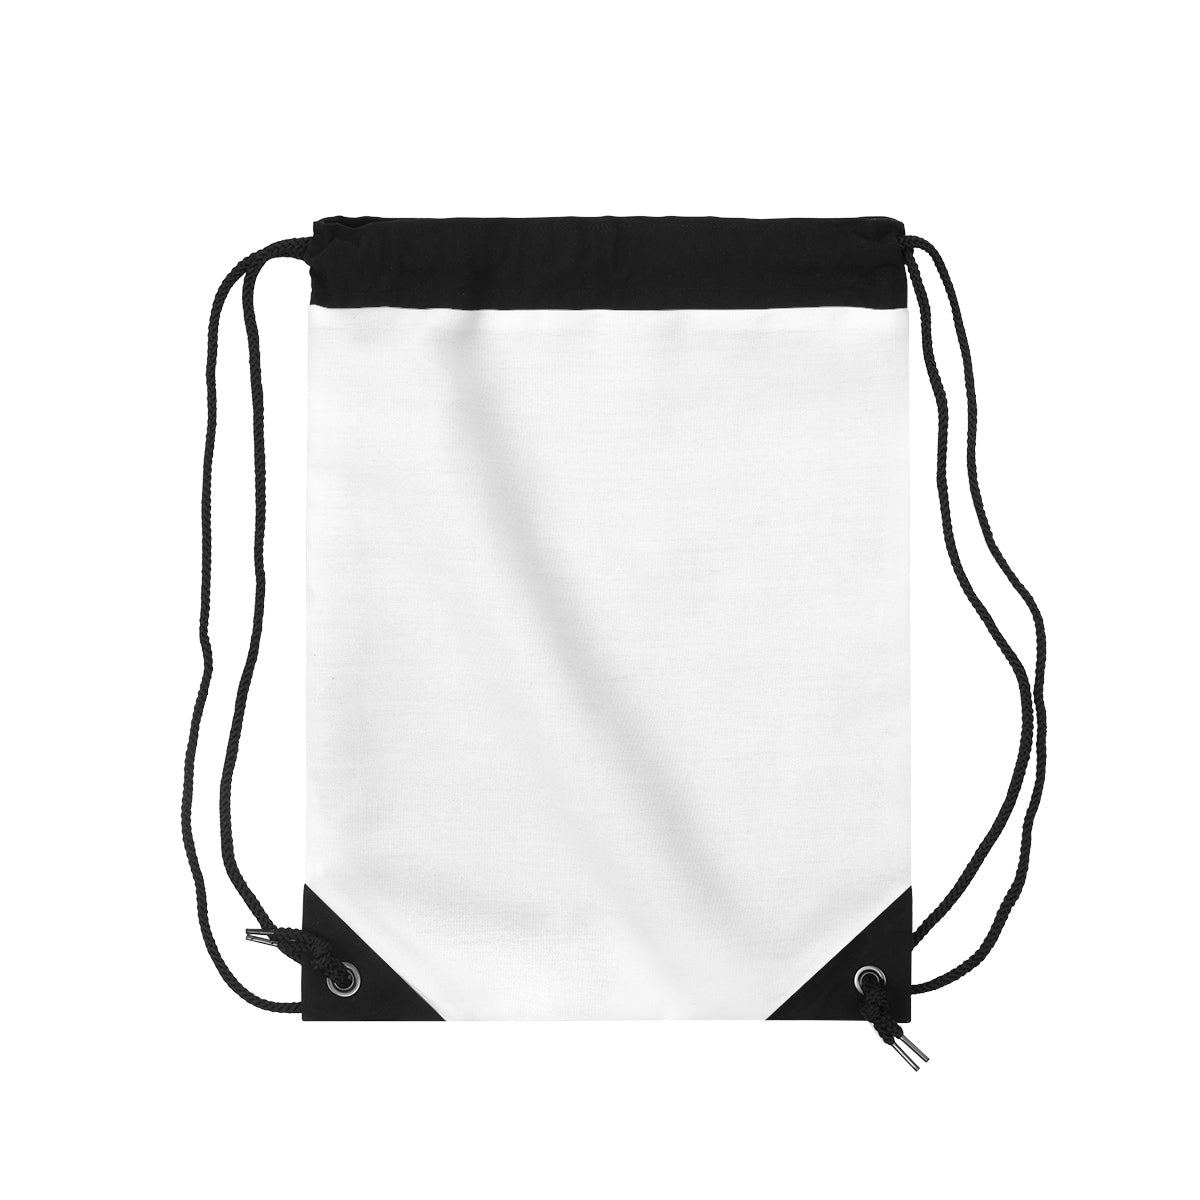 Drawstring Bag - 5 Stars 6 Points